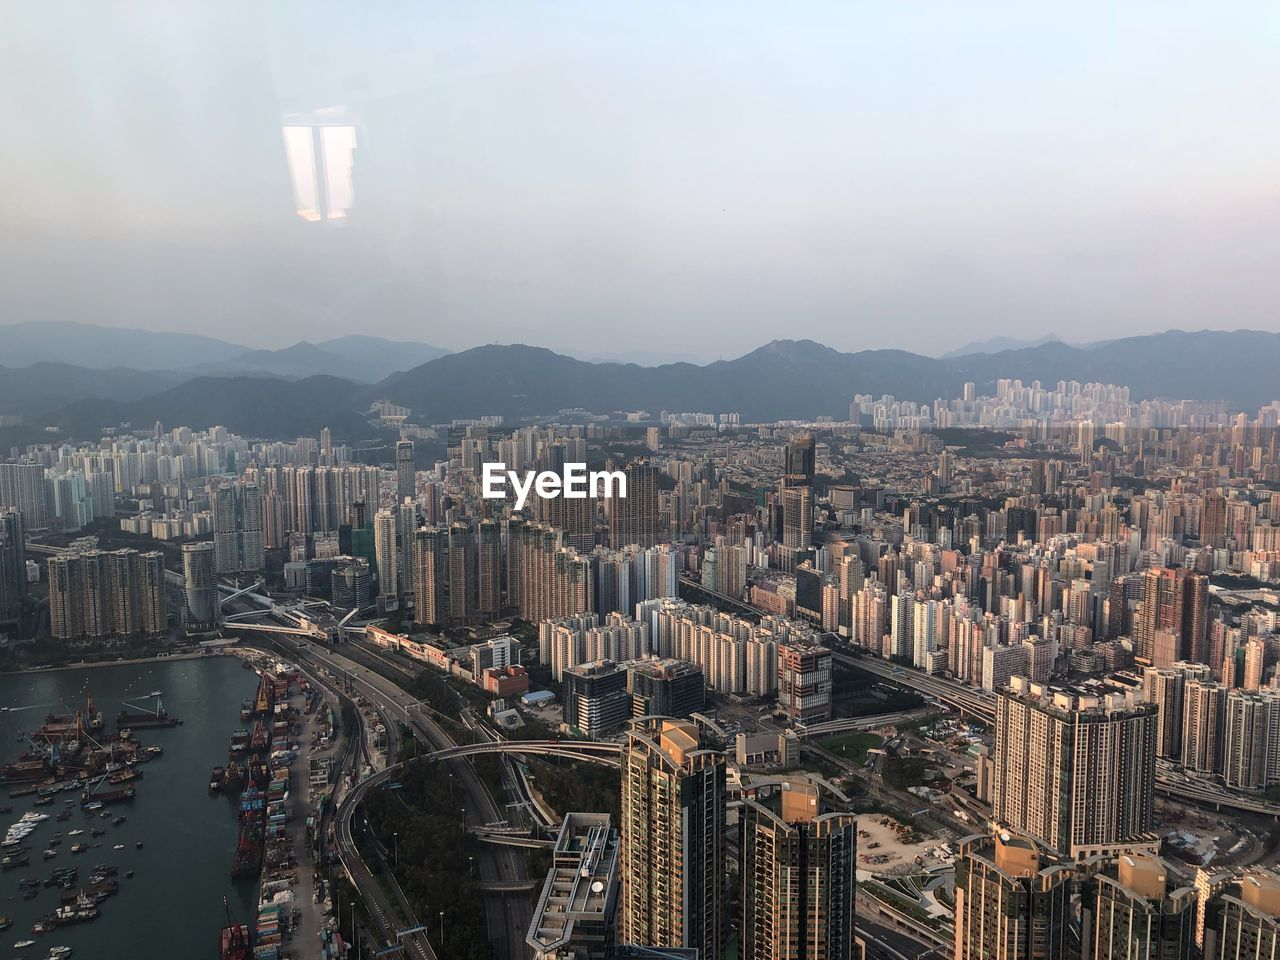 city, building exterior, architecture, cityscape, built structure, building, mountain, sky, crowd, skyscraper, nature, office building exterior, modern, tall - high, high angle view, residential district, landscape, crowded, aerial view, urban skyline, mountain range, outdoors, financial district, bay